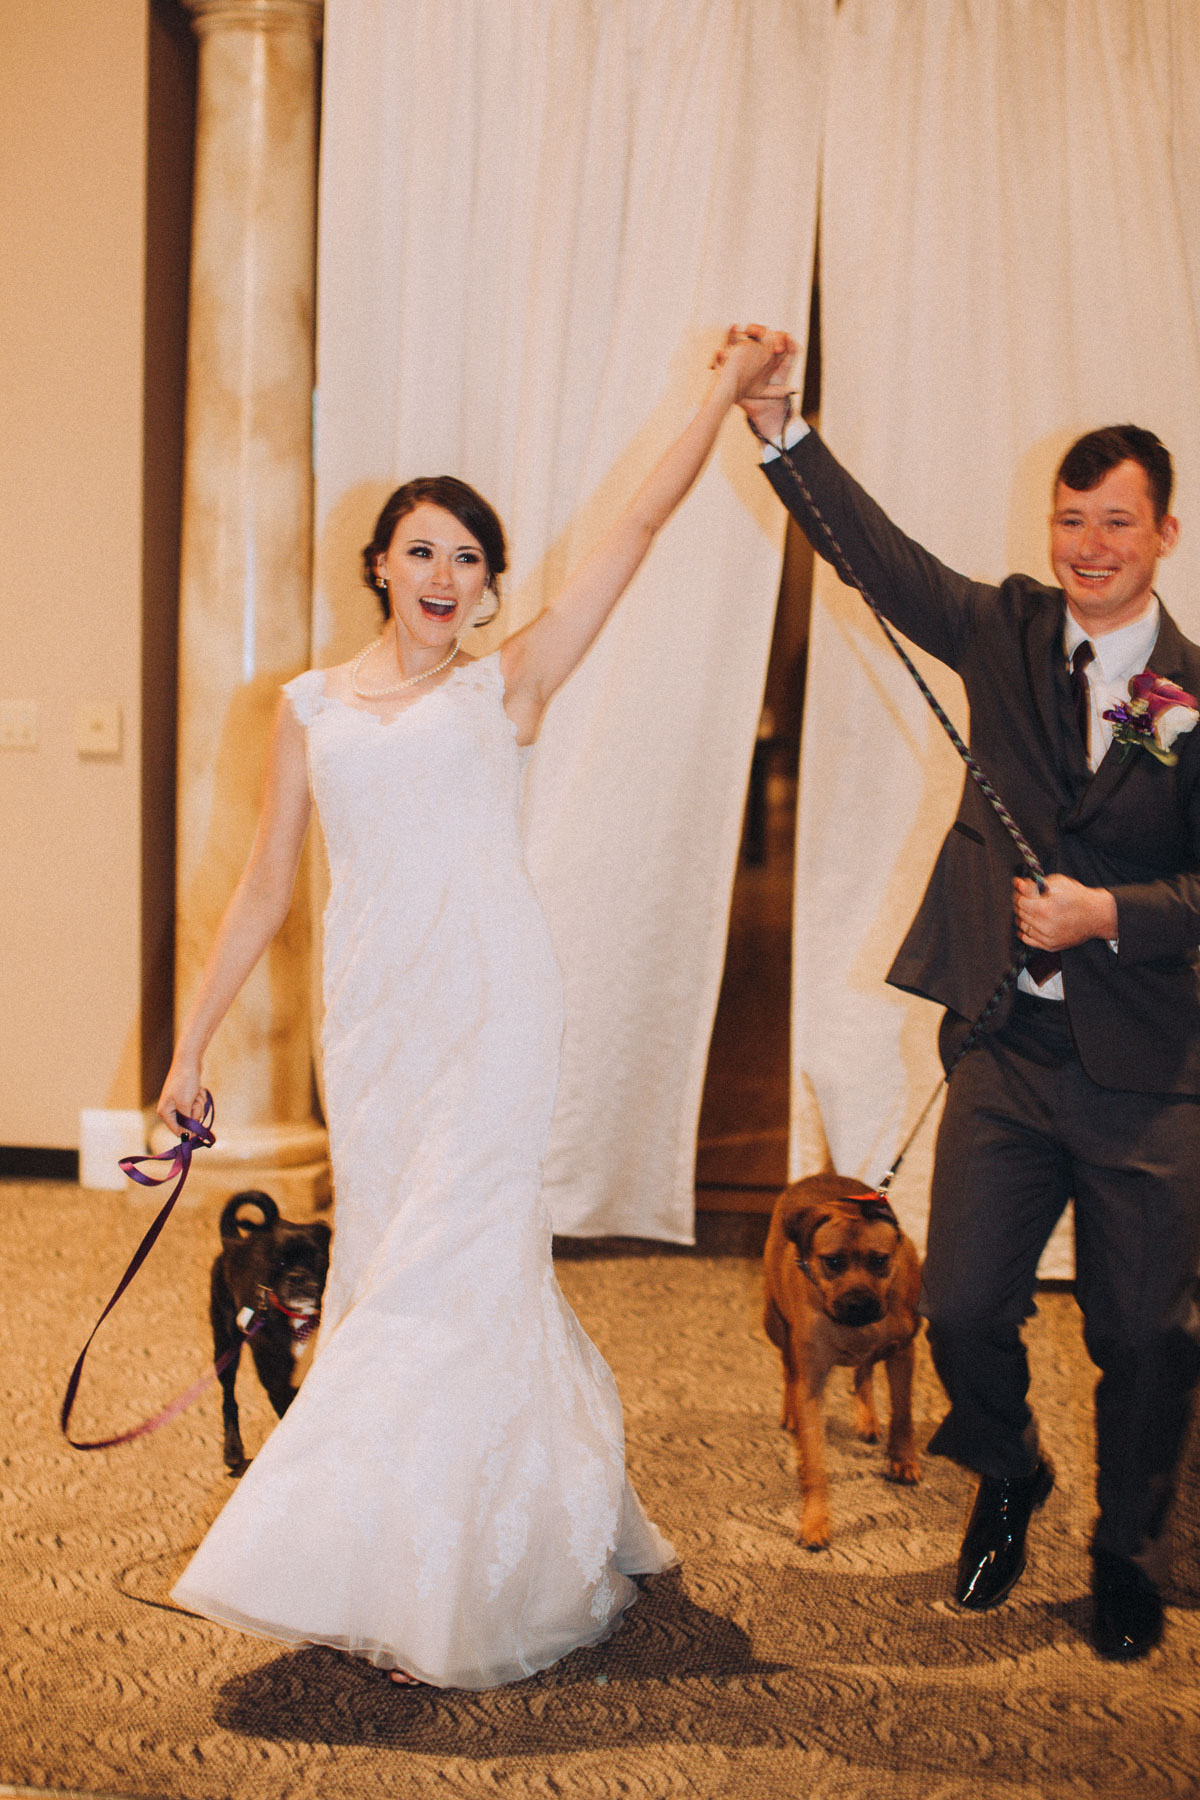 Bride and groom announced during their wedding reception with hands raised and pet dogs at their feet.